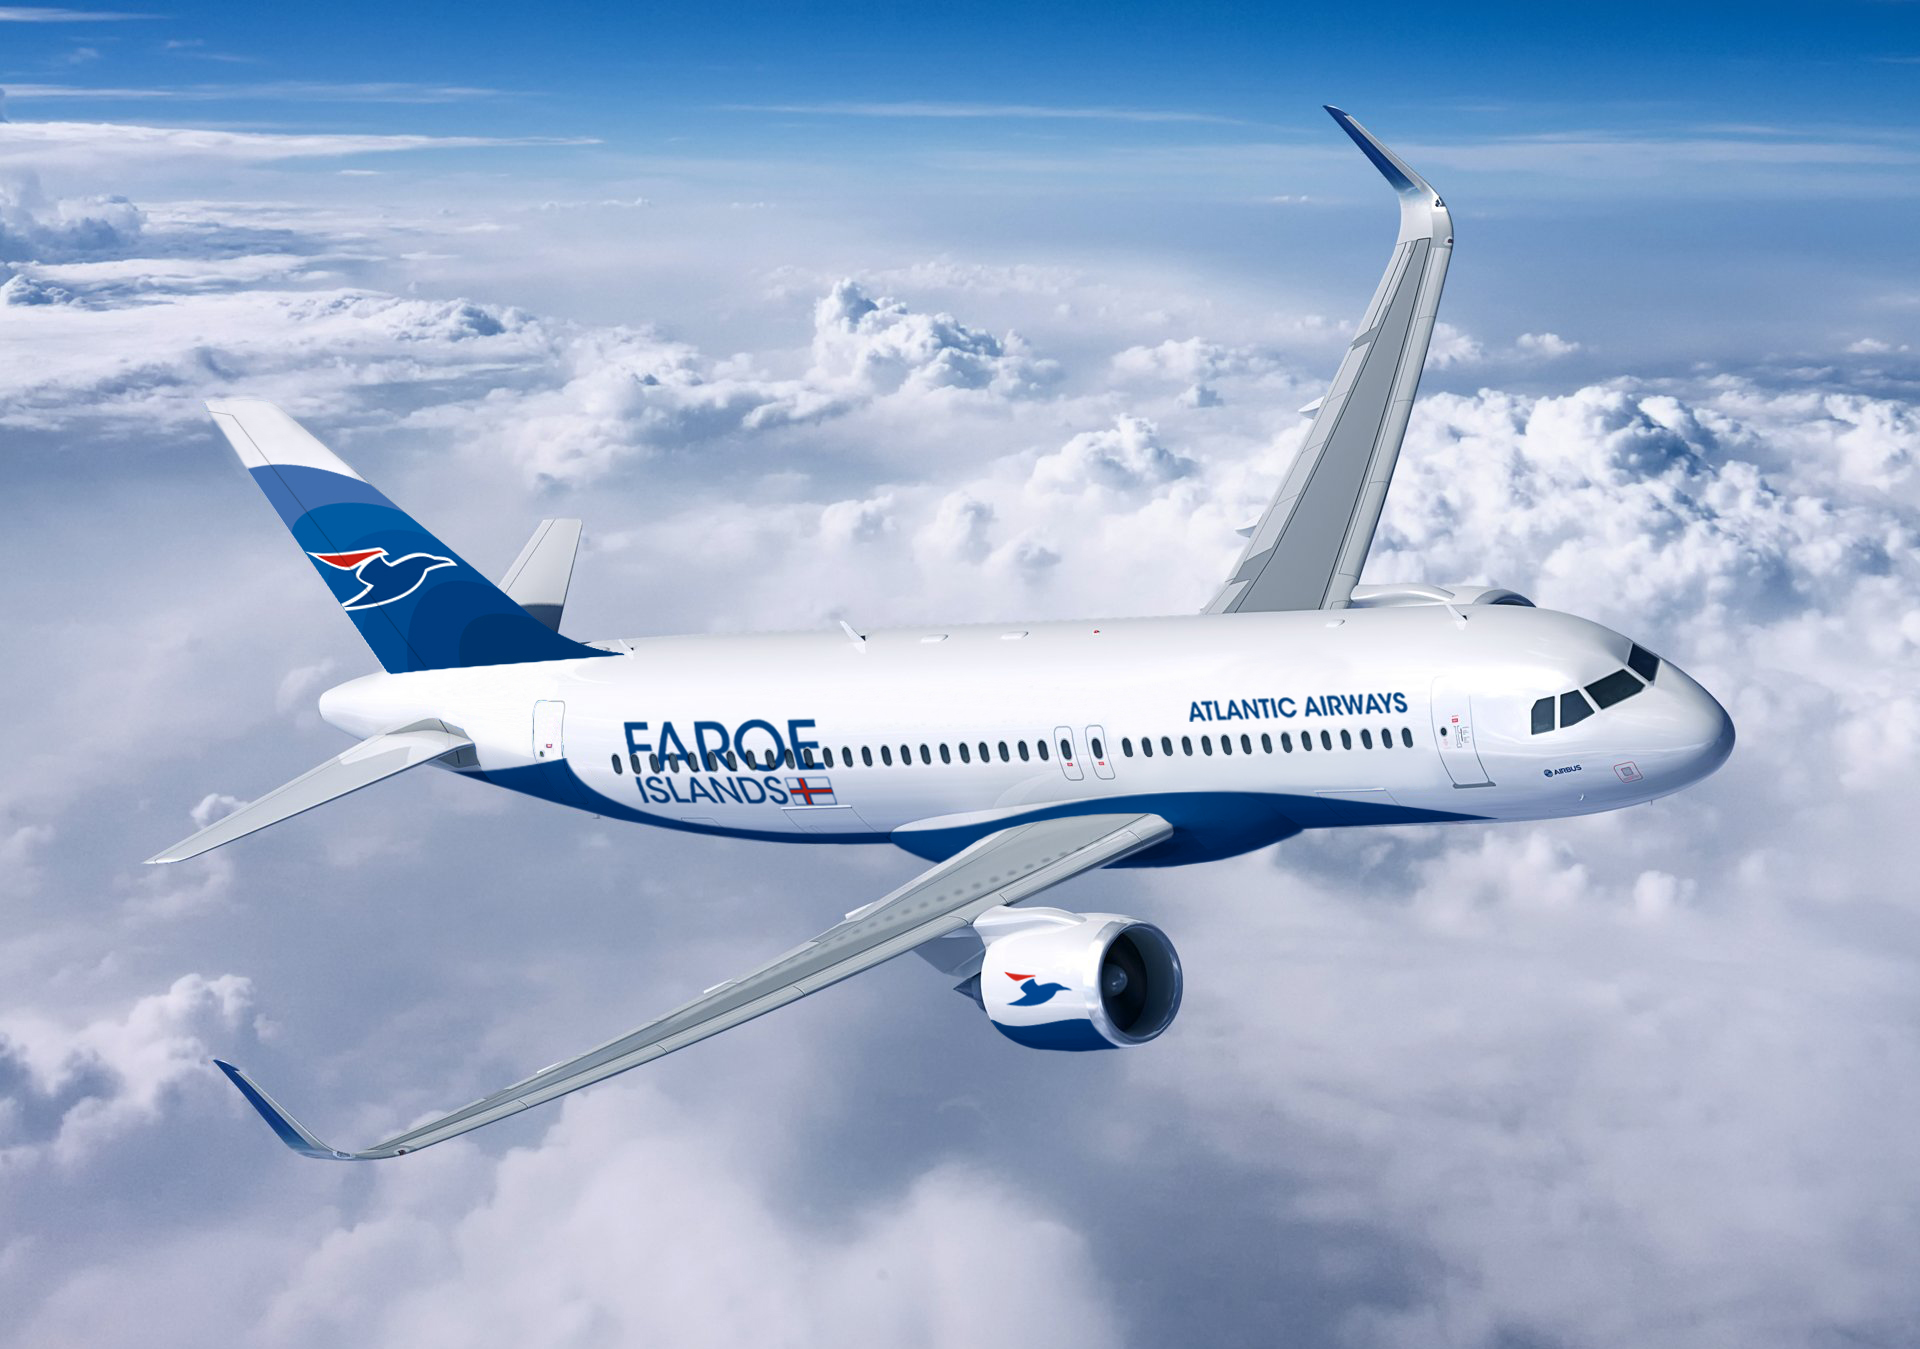 Airbus A320-200neo i Atlantic Airways-bemaling. (Foto: Atlantic Airways)